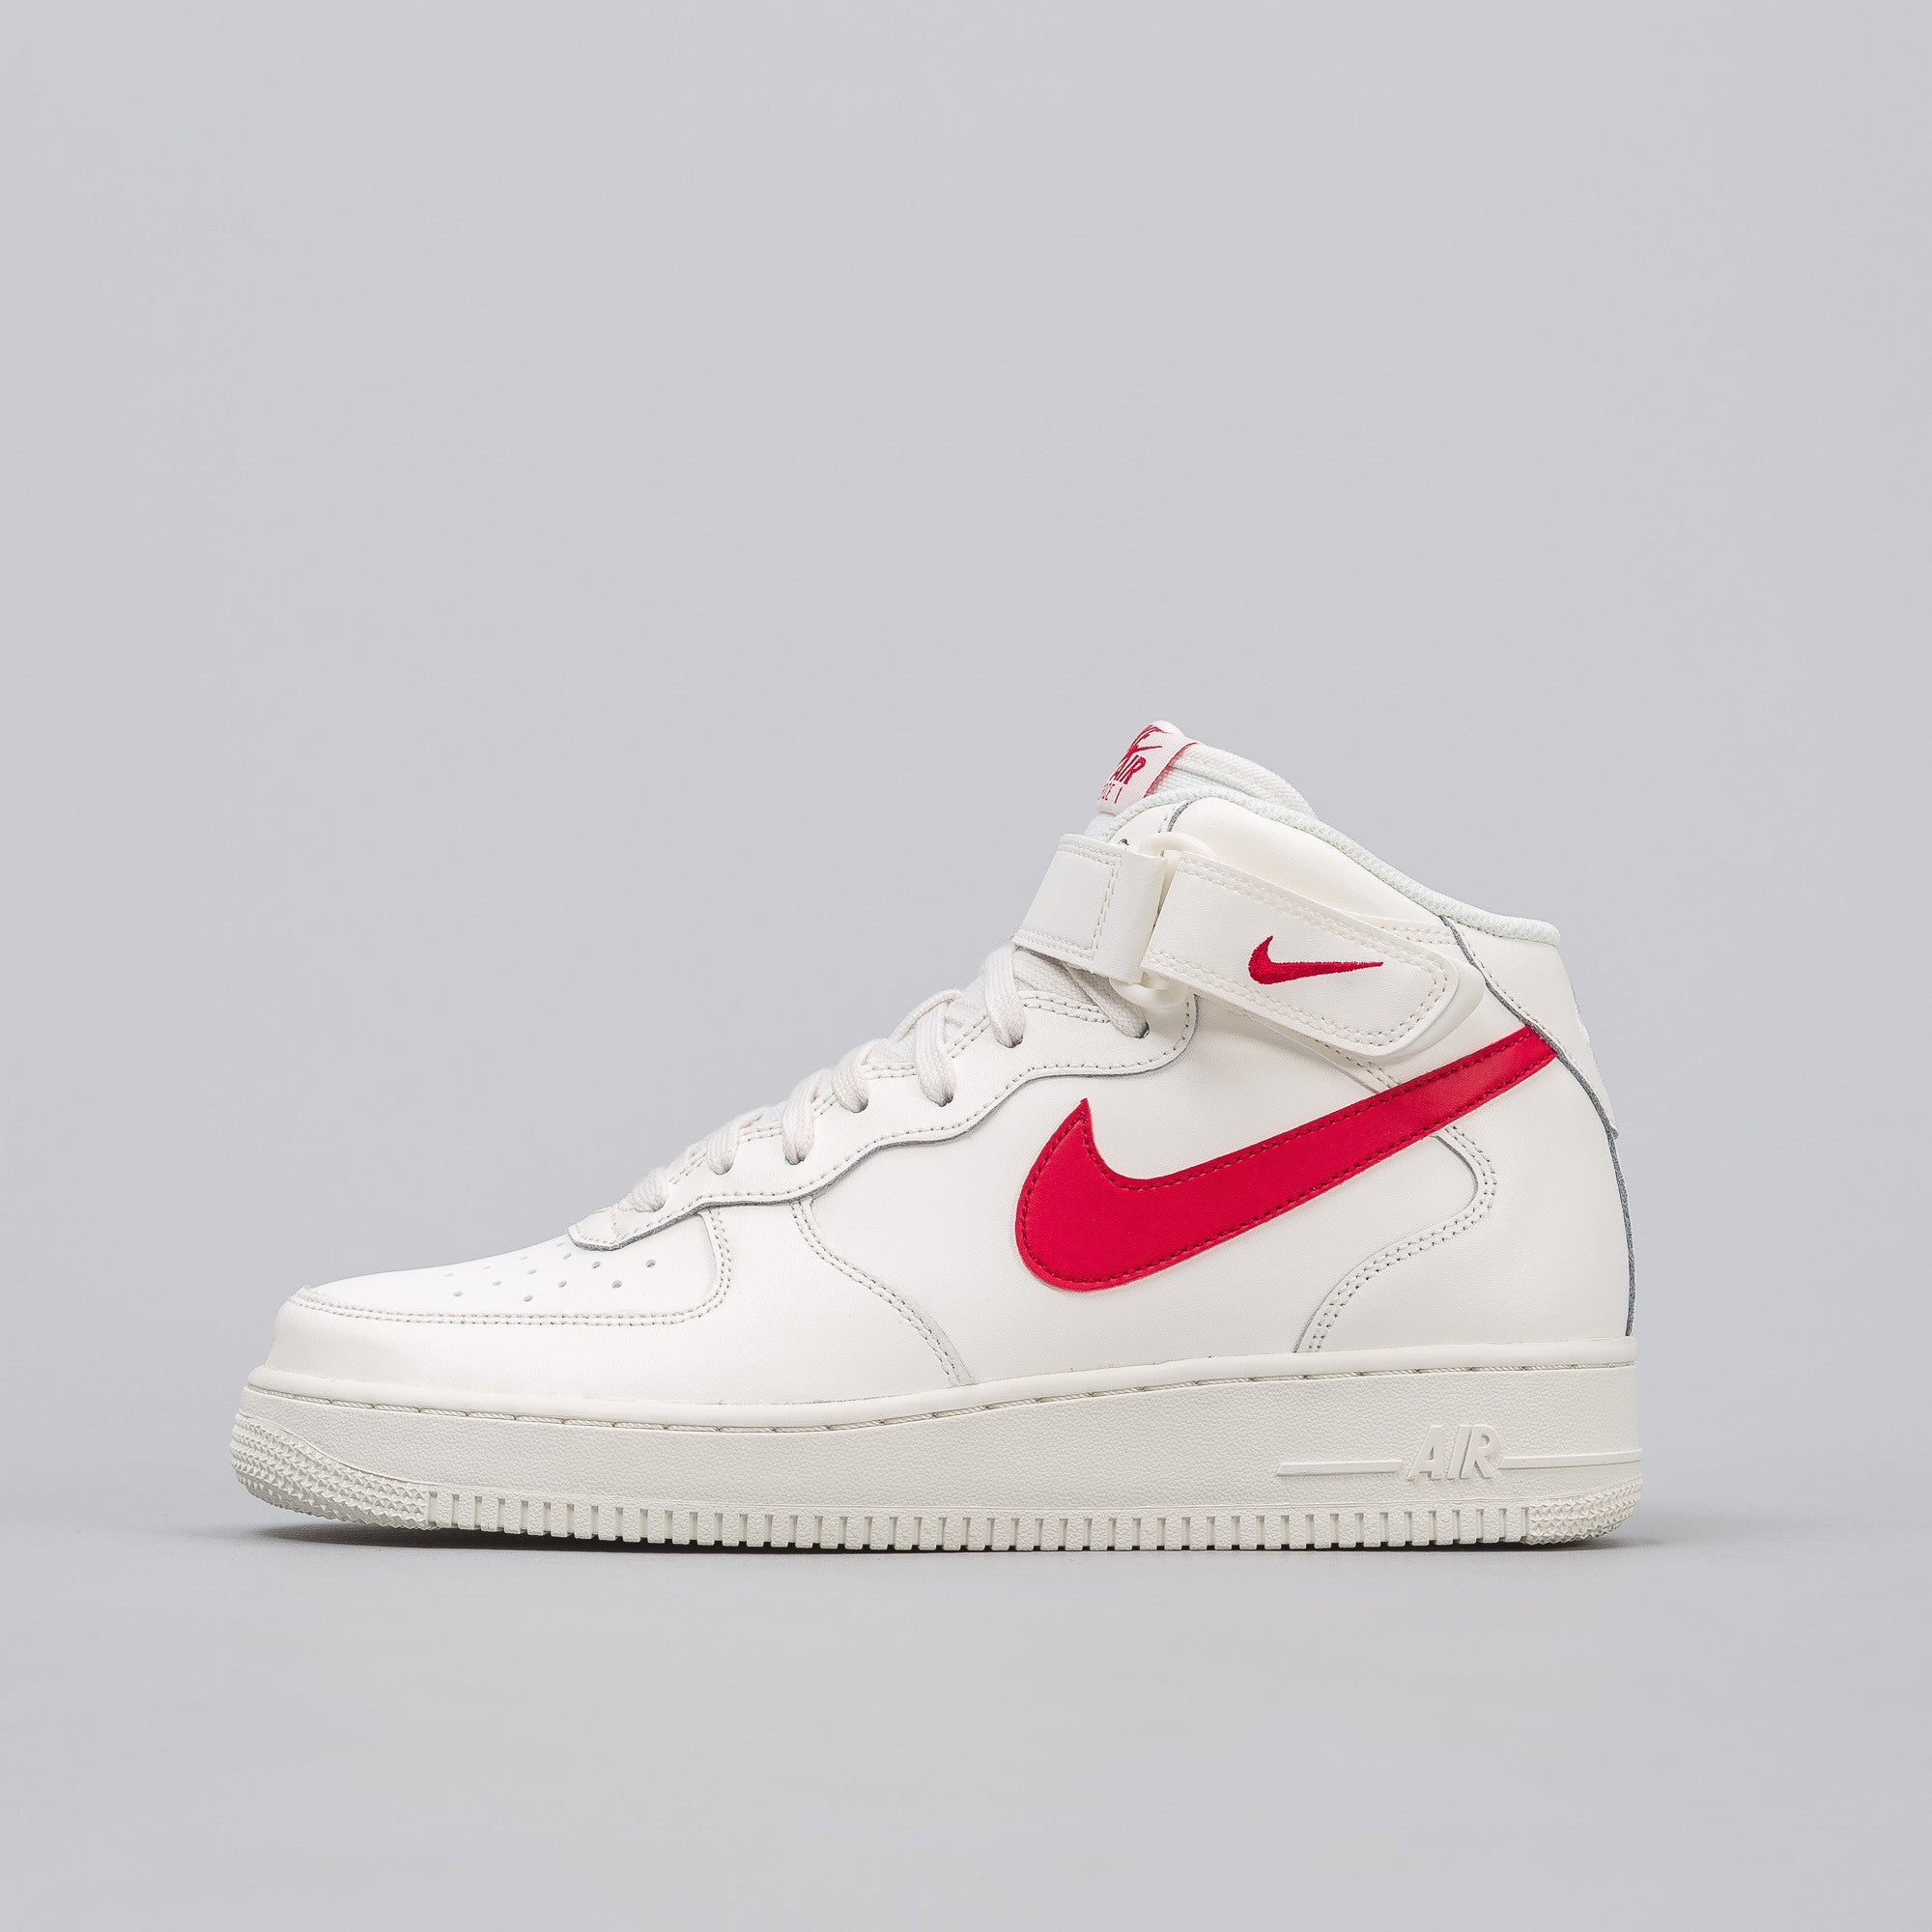 Air Force 1 Mid '07 in Sail/Red